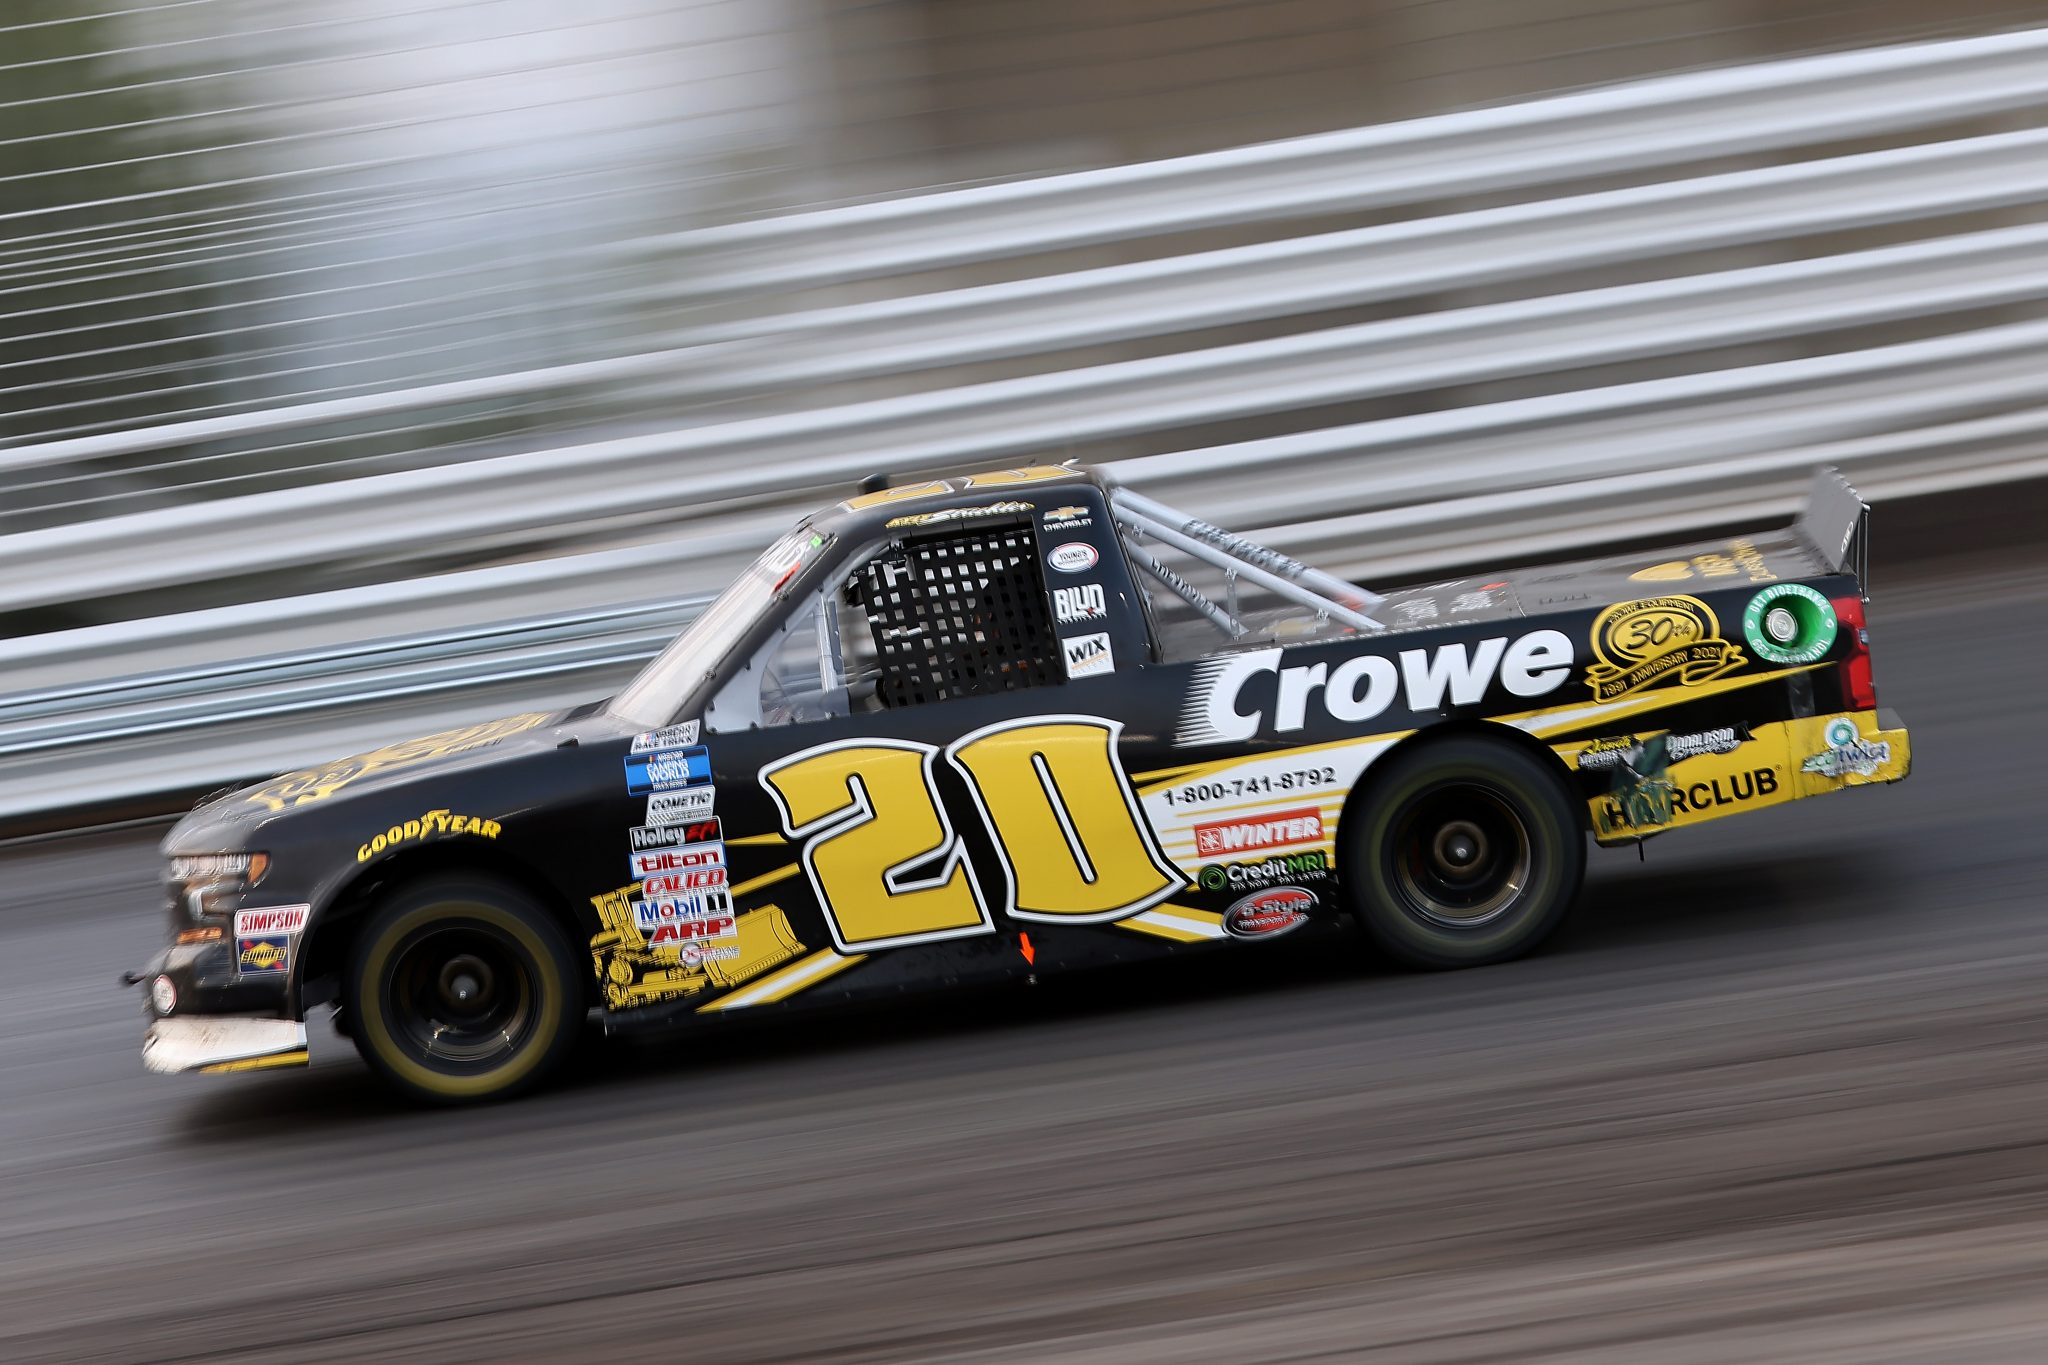 KNOXVILLE, IOWA - JULY 09: Kyle Strickler, driver of the #20 Crowe Equipment Chevrolet, drives during the NASCAR Camping World Truck Series Corn Belt 150 presented by Premier Chevy Dealers at Knoxville Raceway on July 09, 2021 in Knoxville, Iowa. (Photo by James Gilbert/Getty Images)   Getty Images